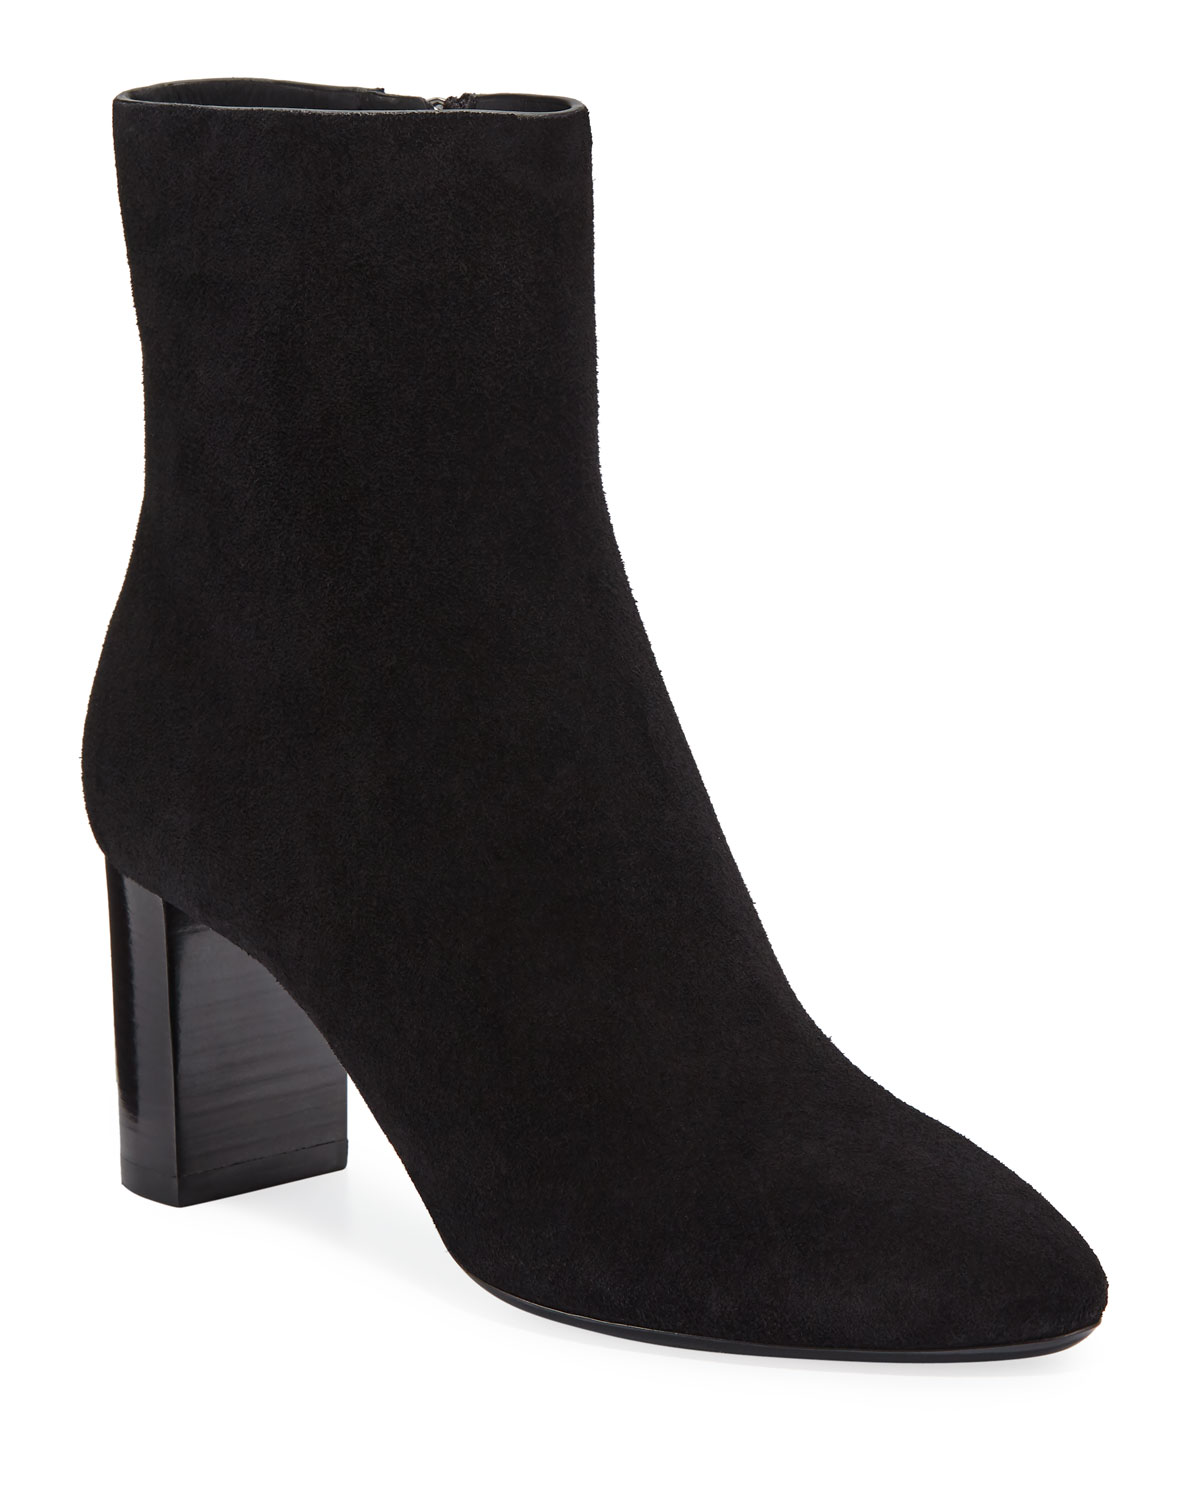 LOU LOU SUEDE BOOTIES